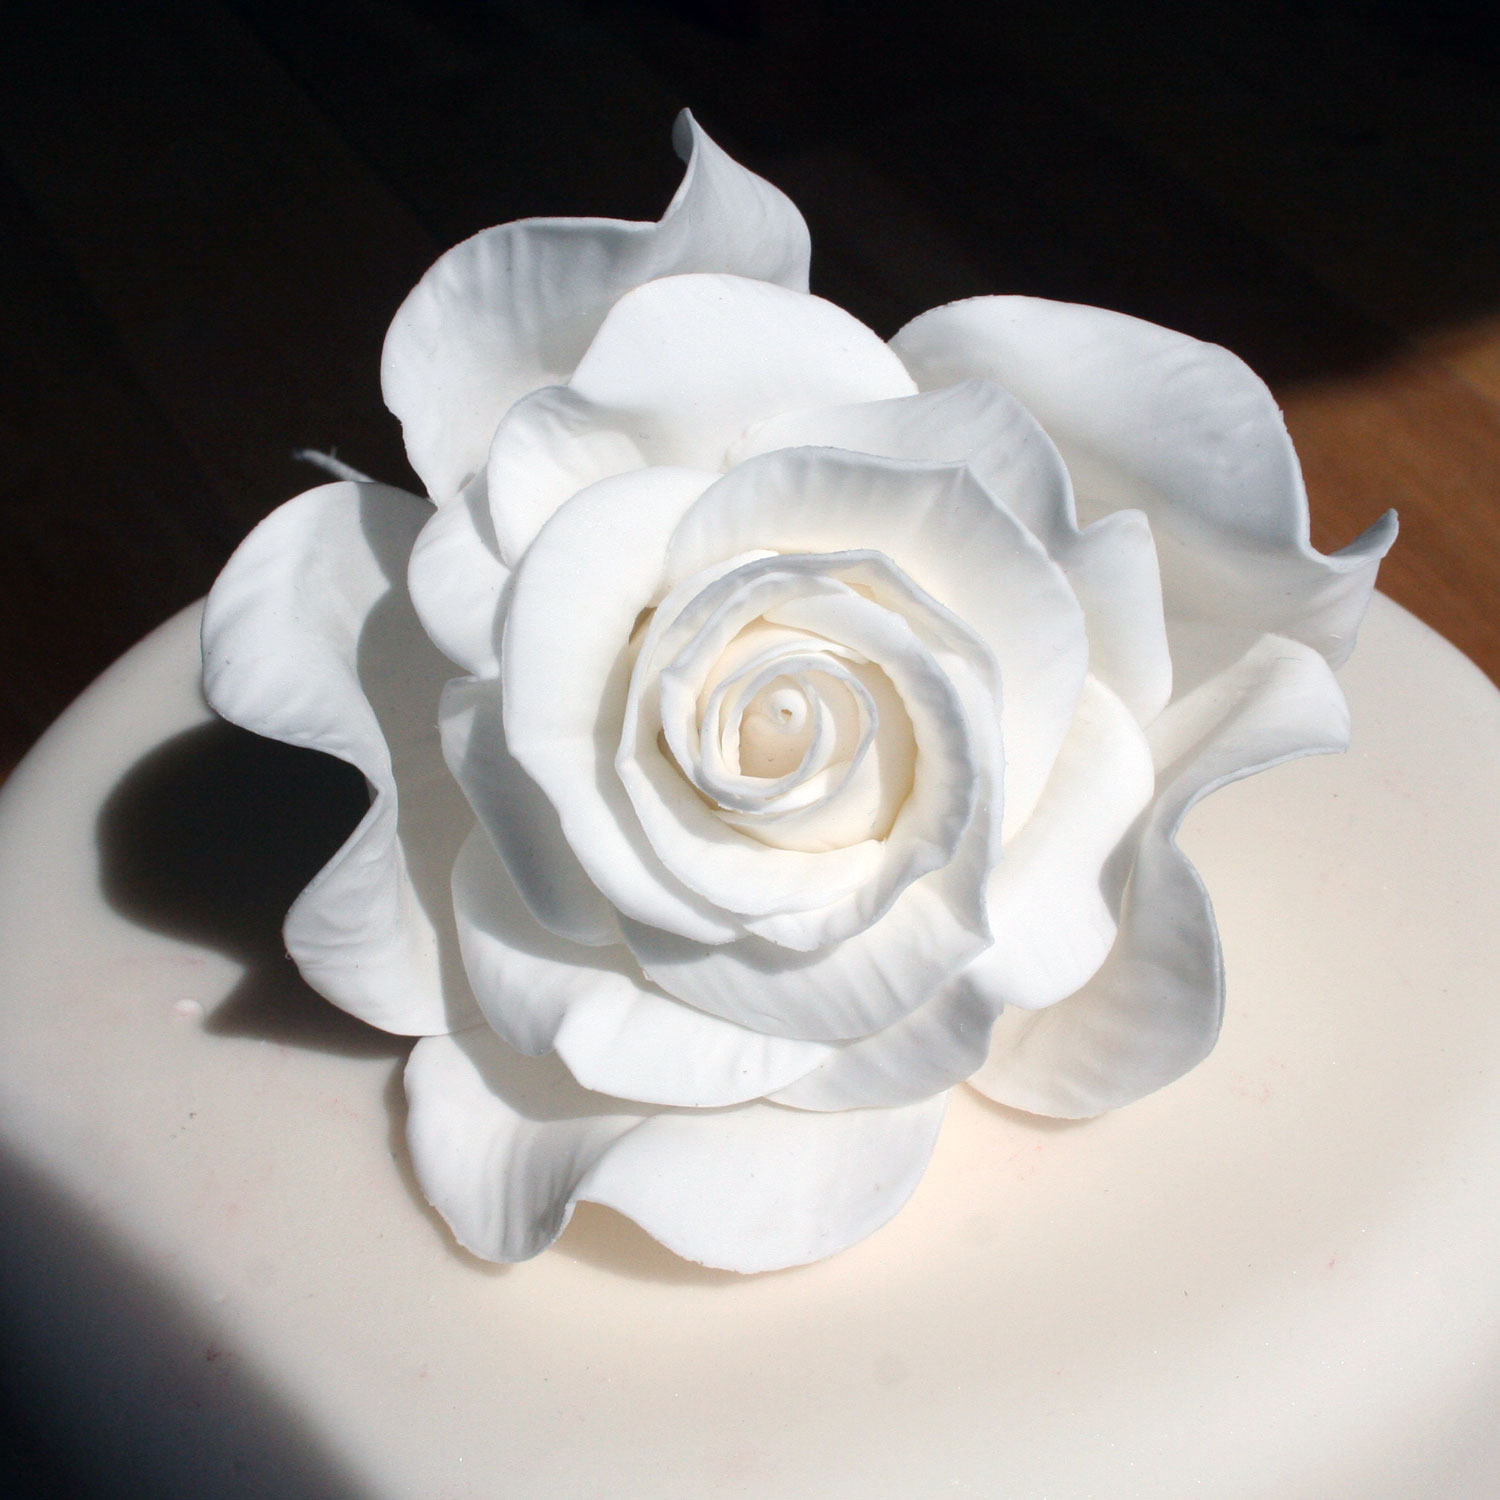 Hand-made Giant White Sugar Rose